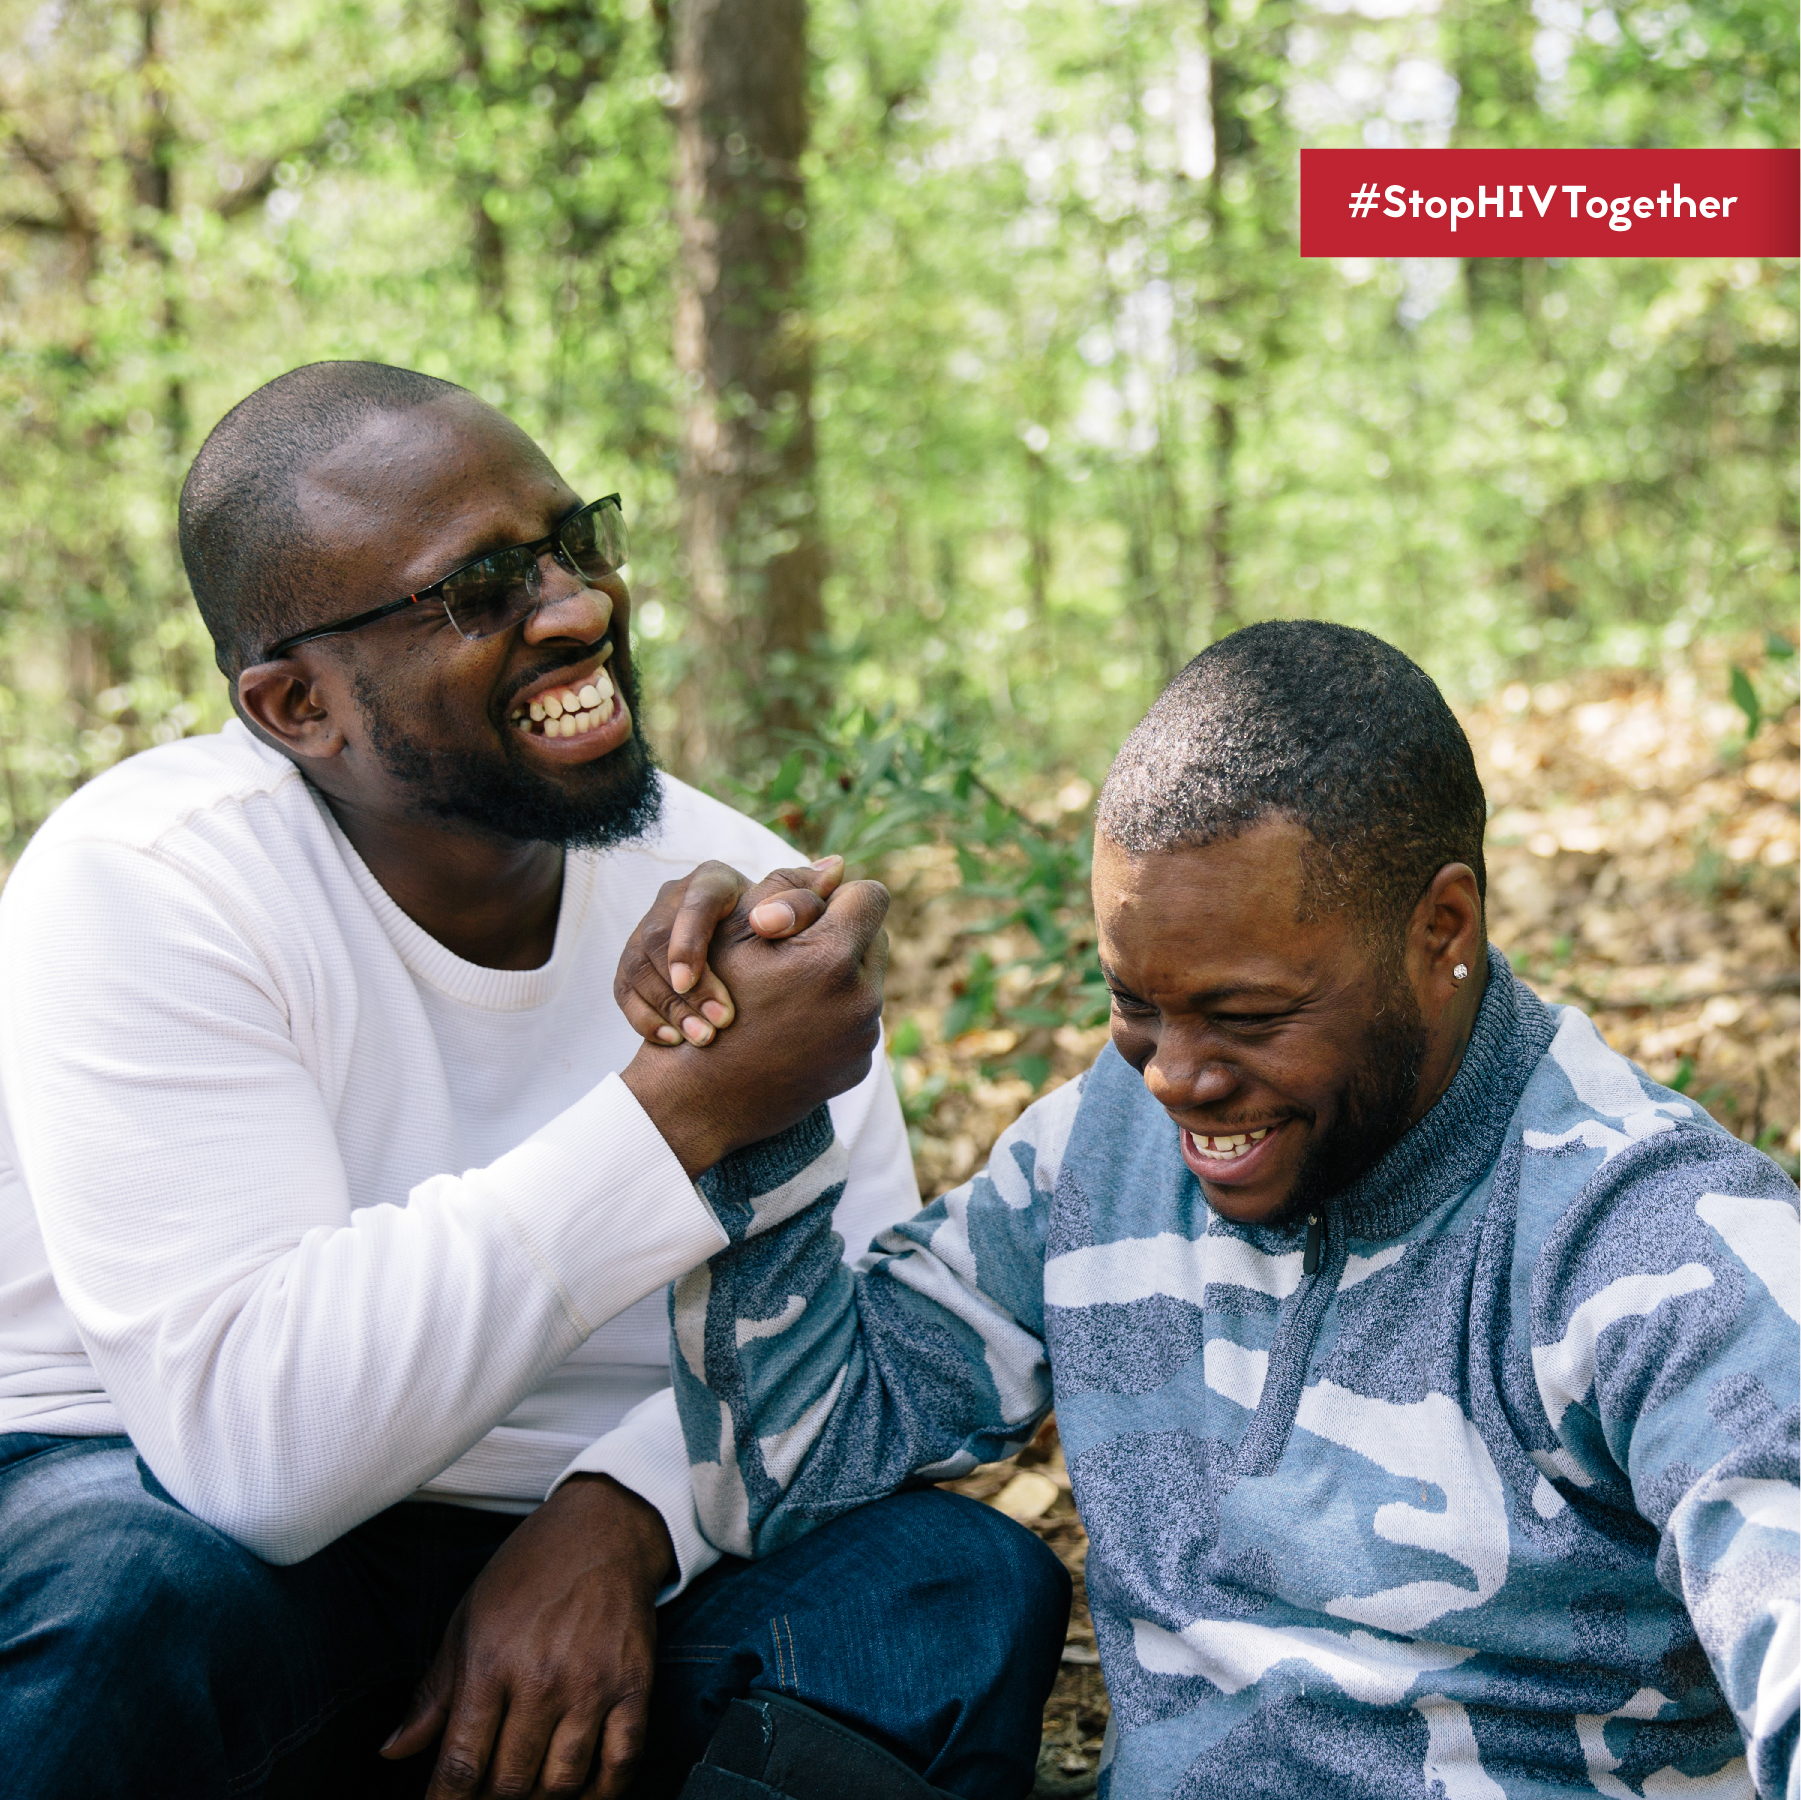 Two men smile while shaking hands in outdoor wooded area. #StopHIVTogether